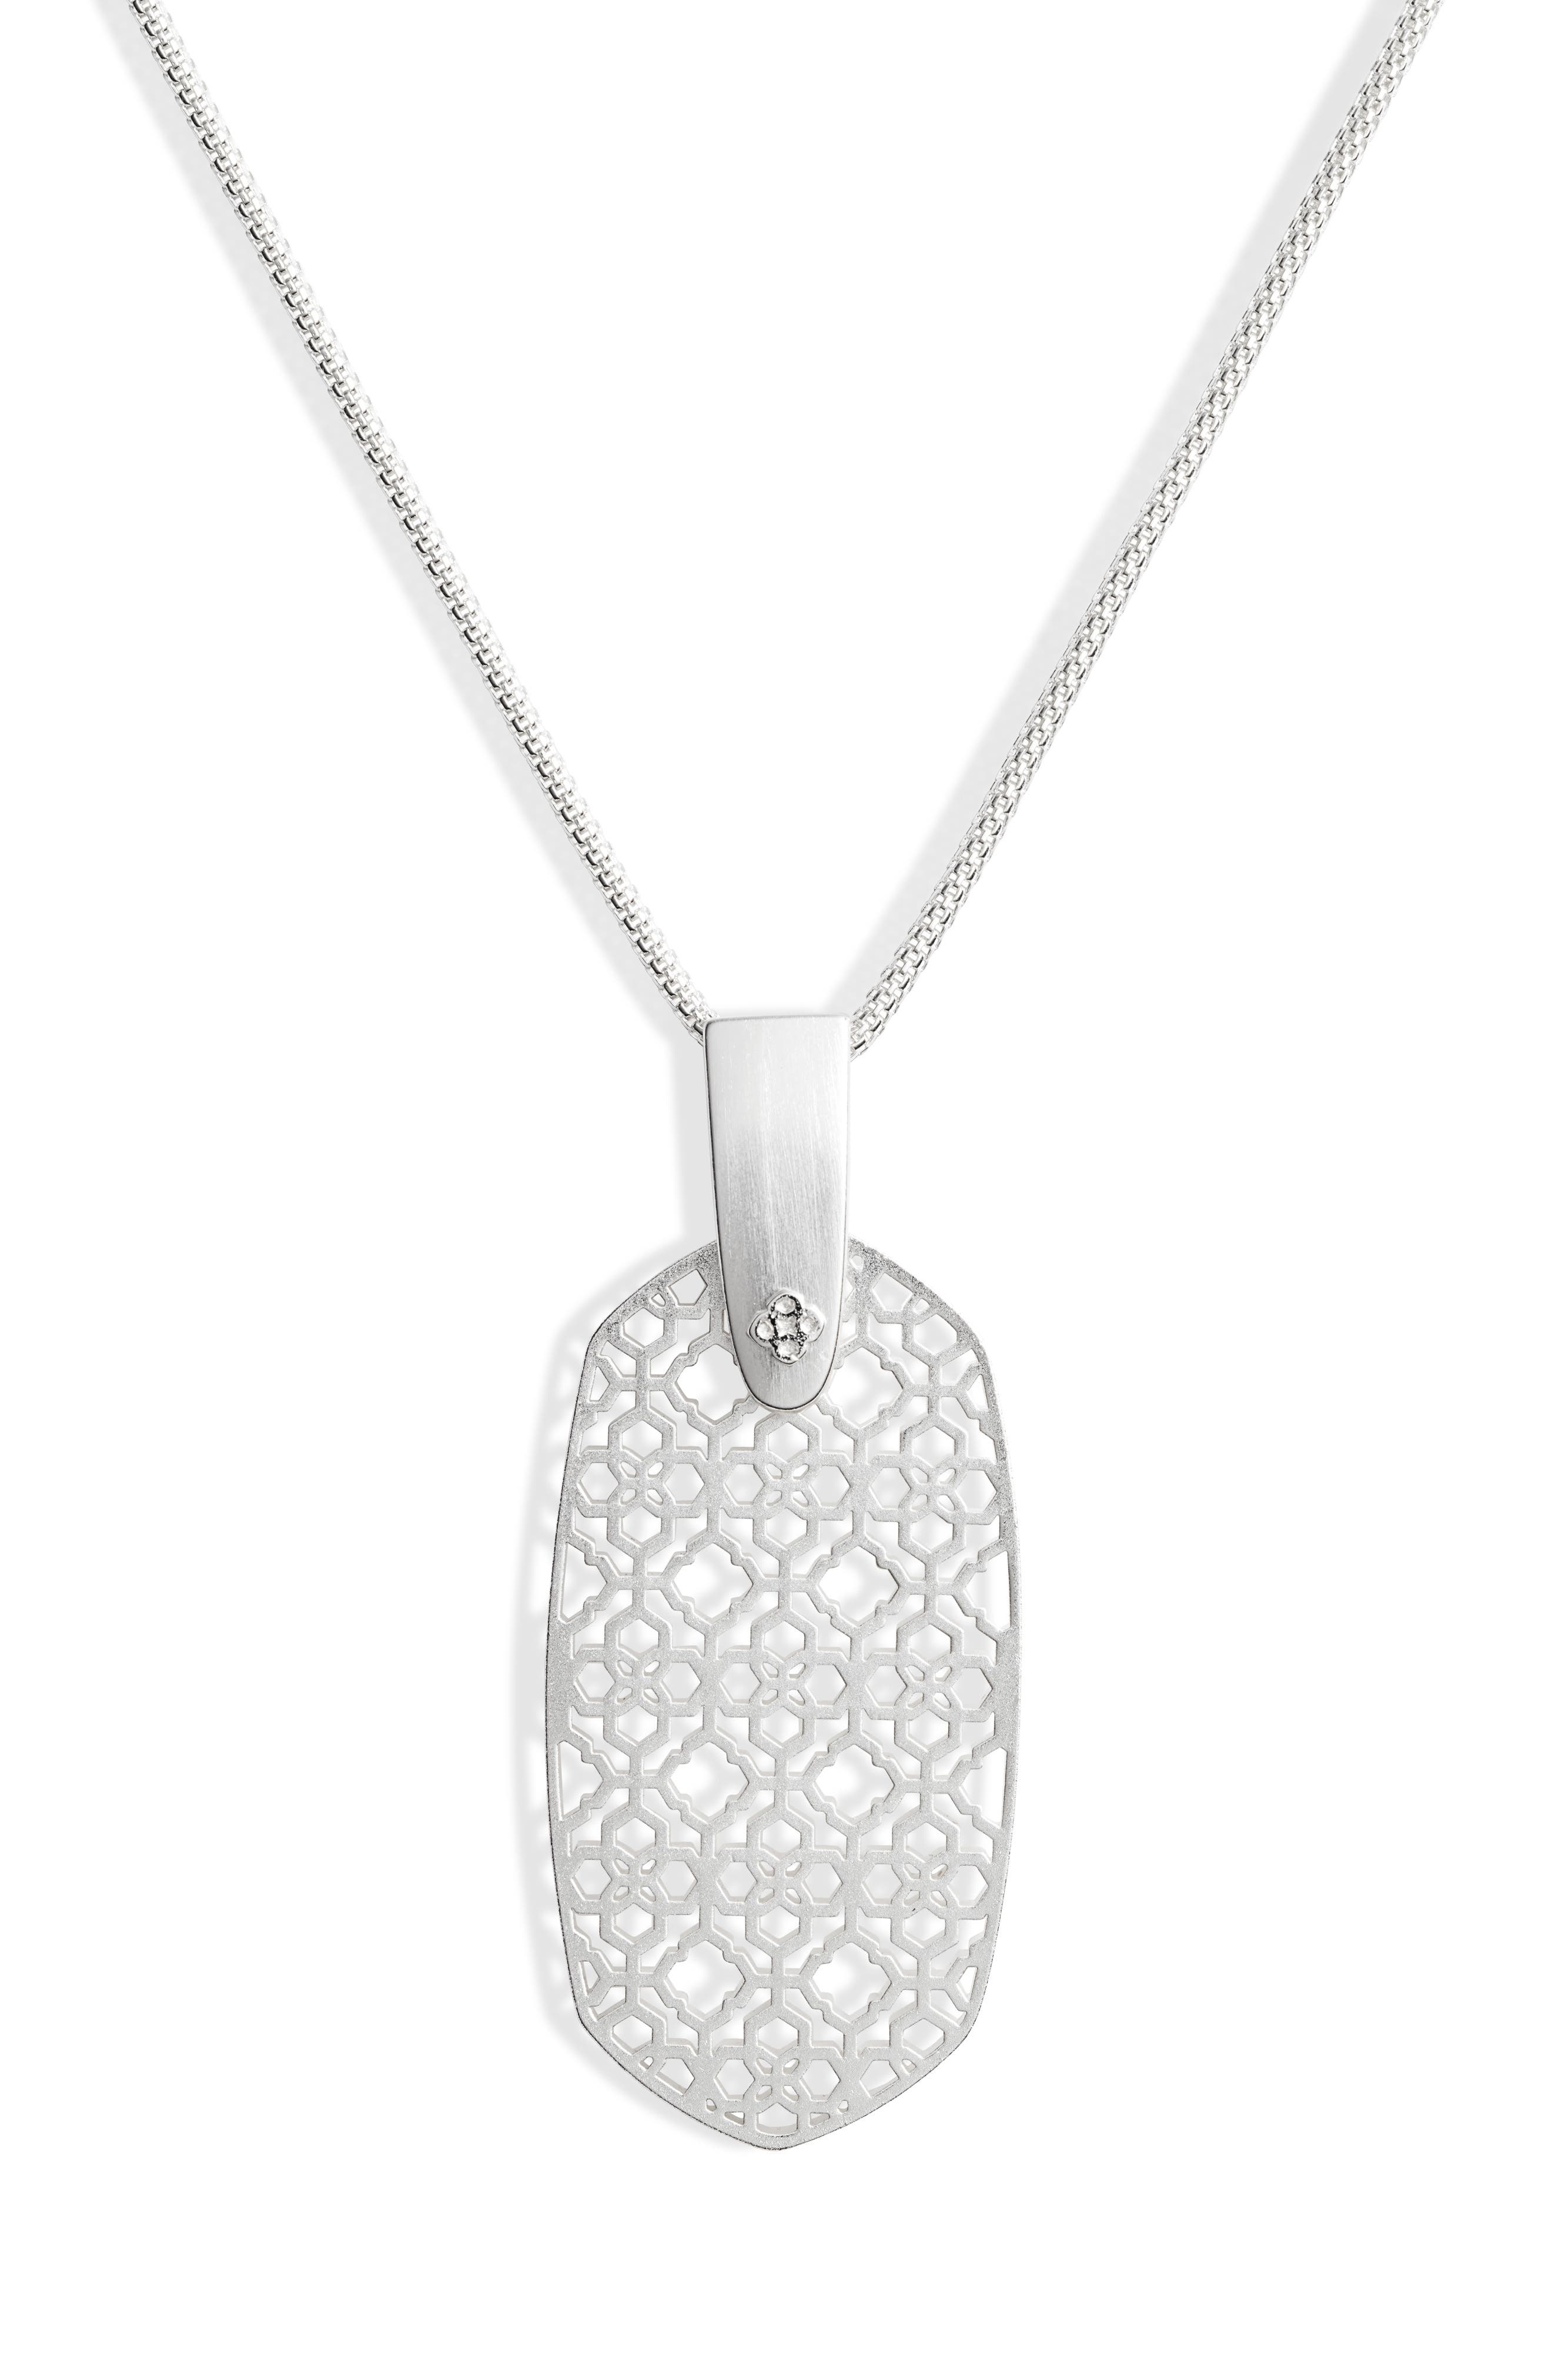 KENDRA SCOTT,                             Inez Filigree Pendant Necklace,                             Alternate thumbnail 3, color,                             RHODIUM FILIGREE METAL